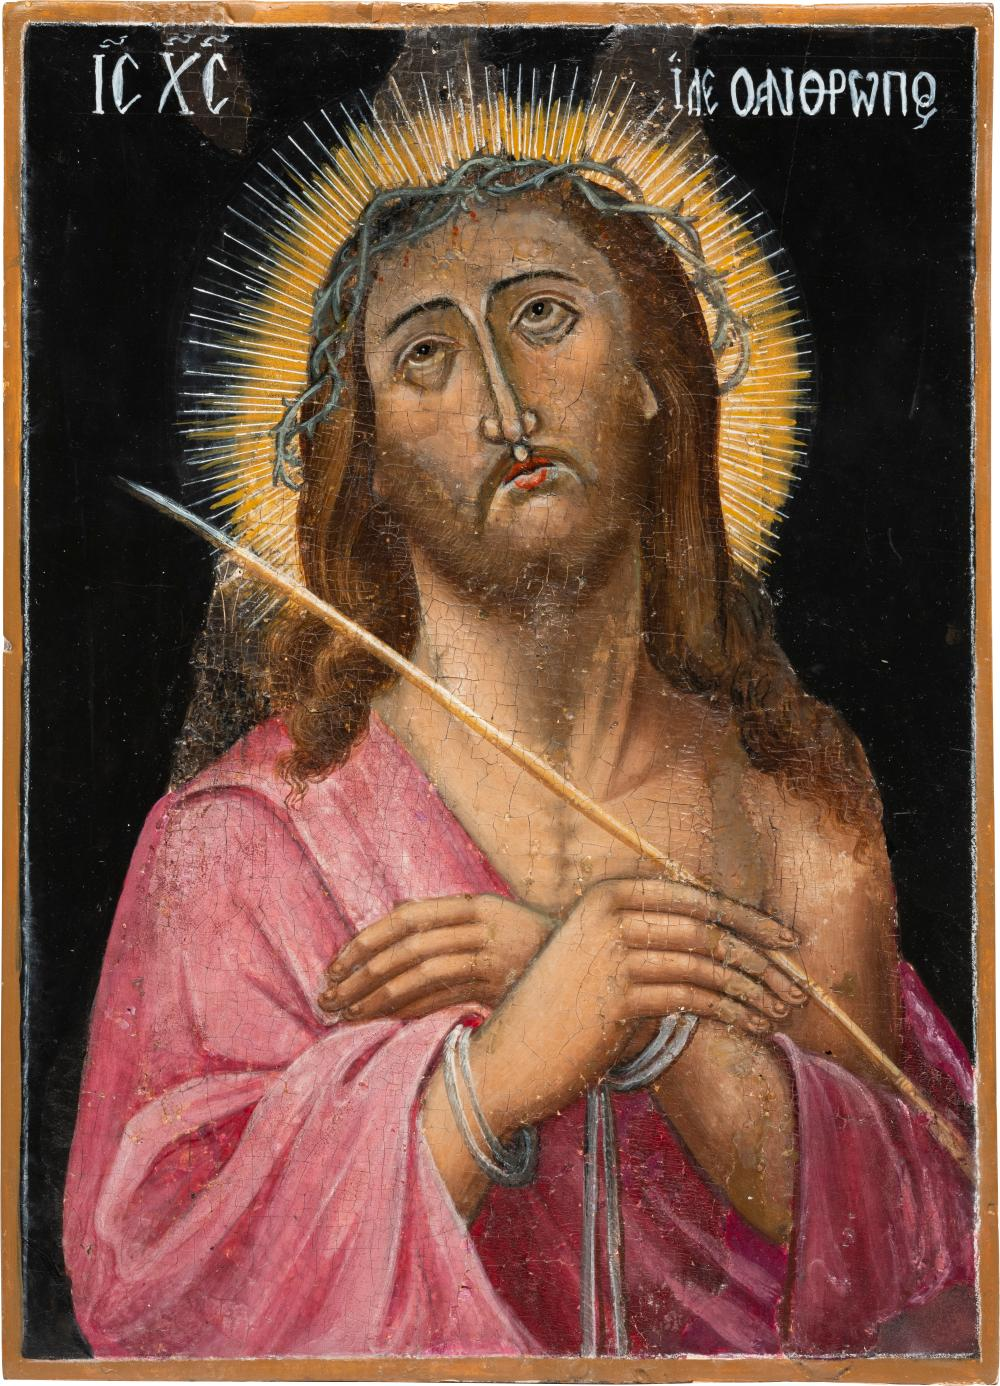 AN ICON SHOWING CHRIST CROWNED WITH THORNS